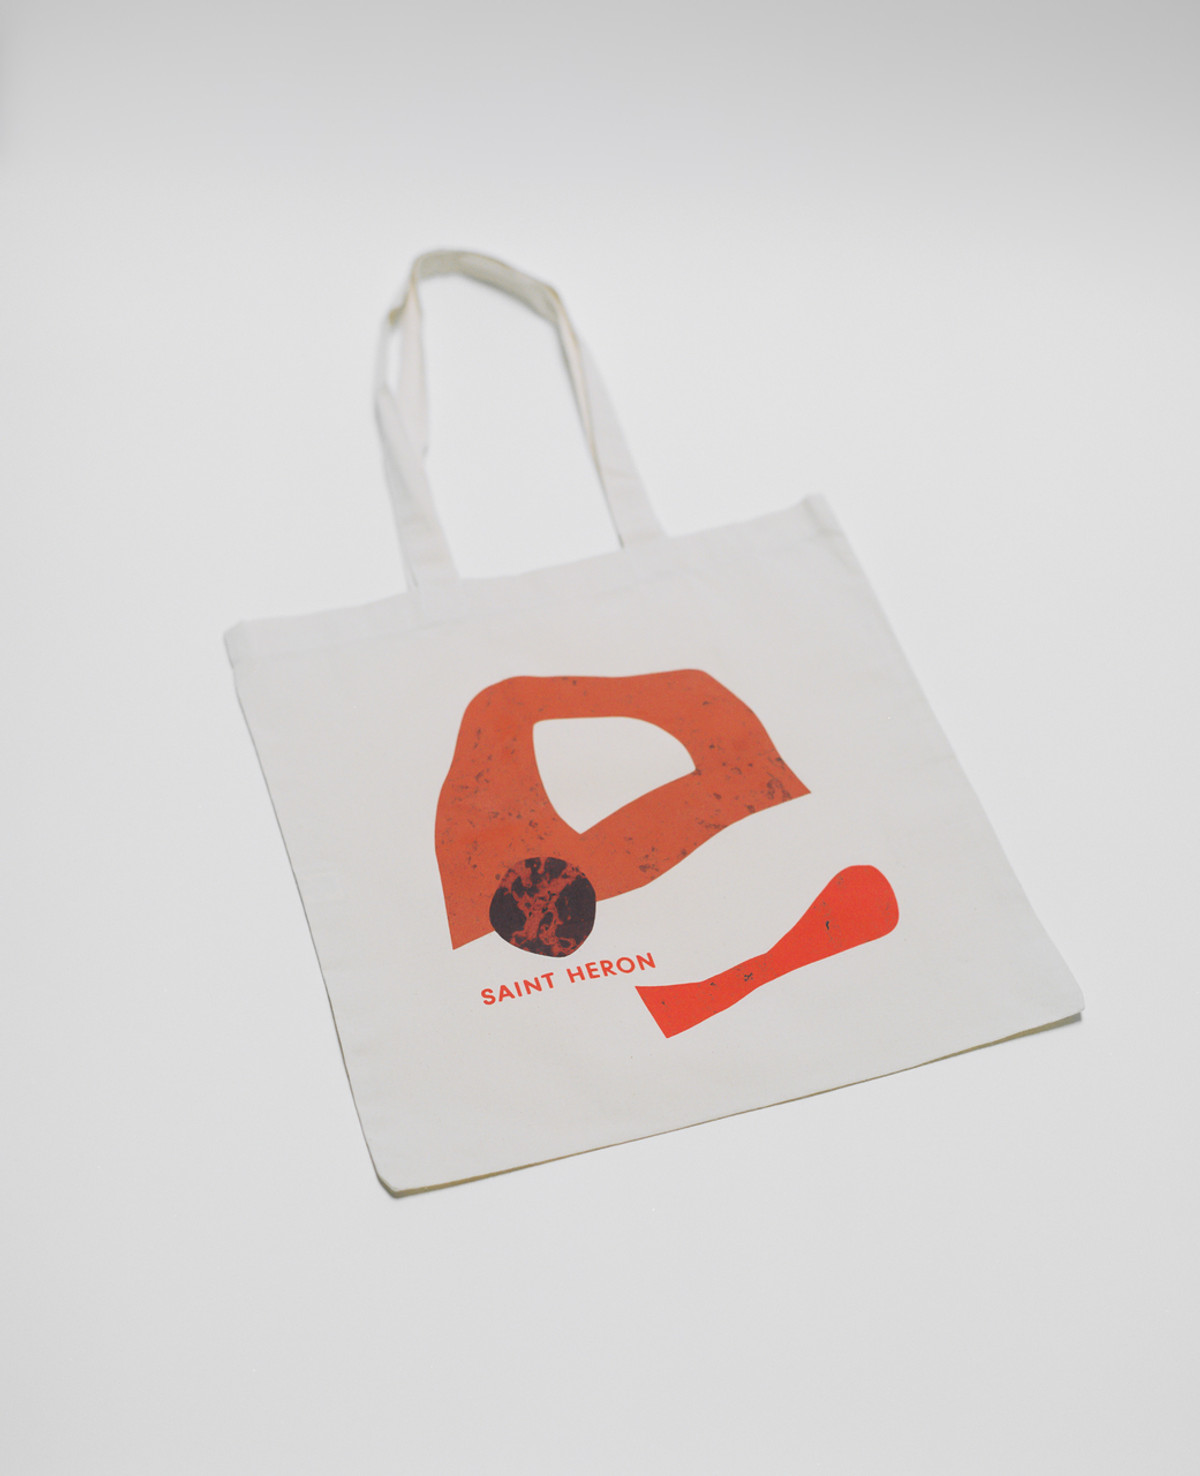 Saint Heron Tote Bag - Multi-Shape